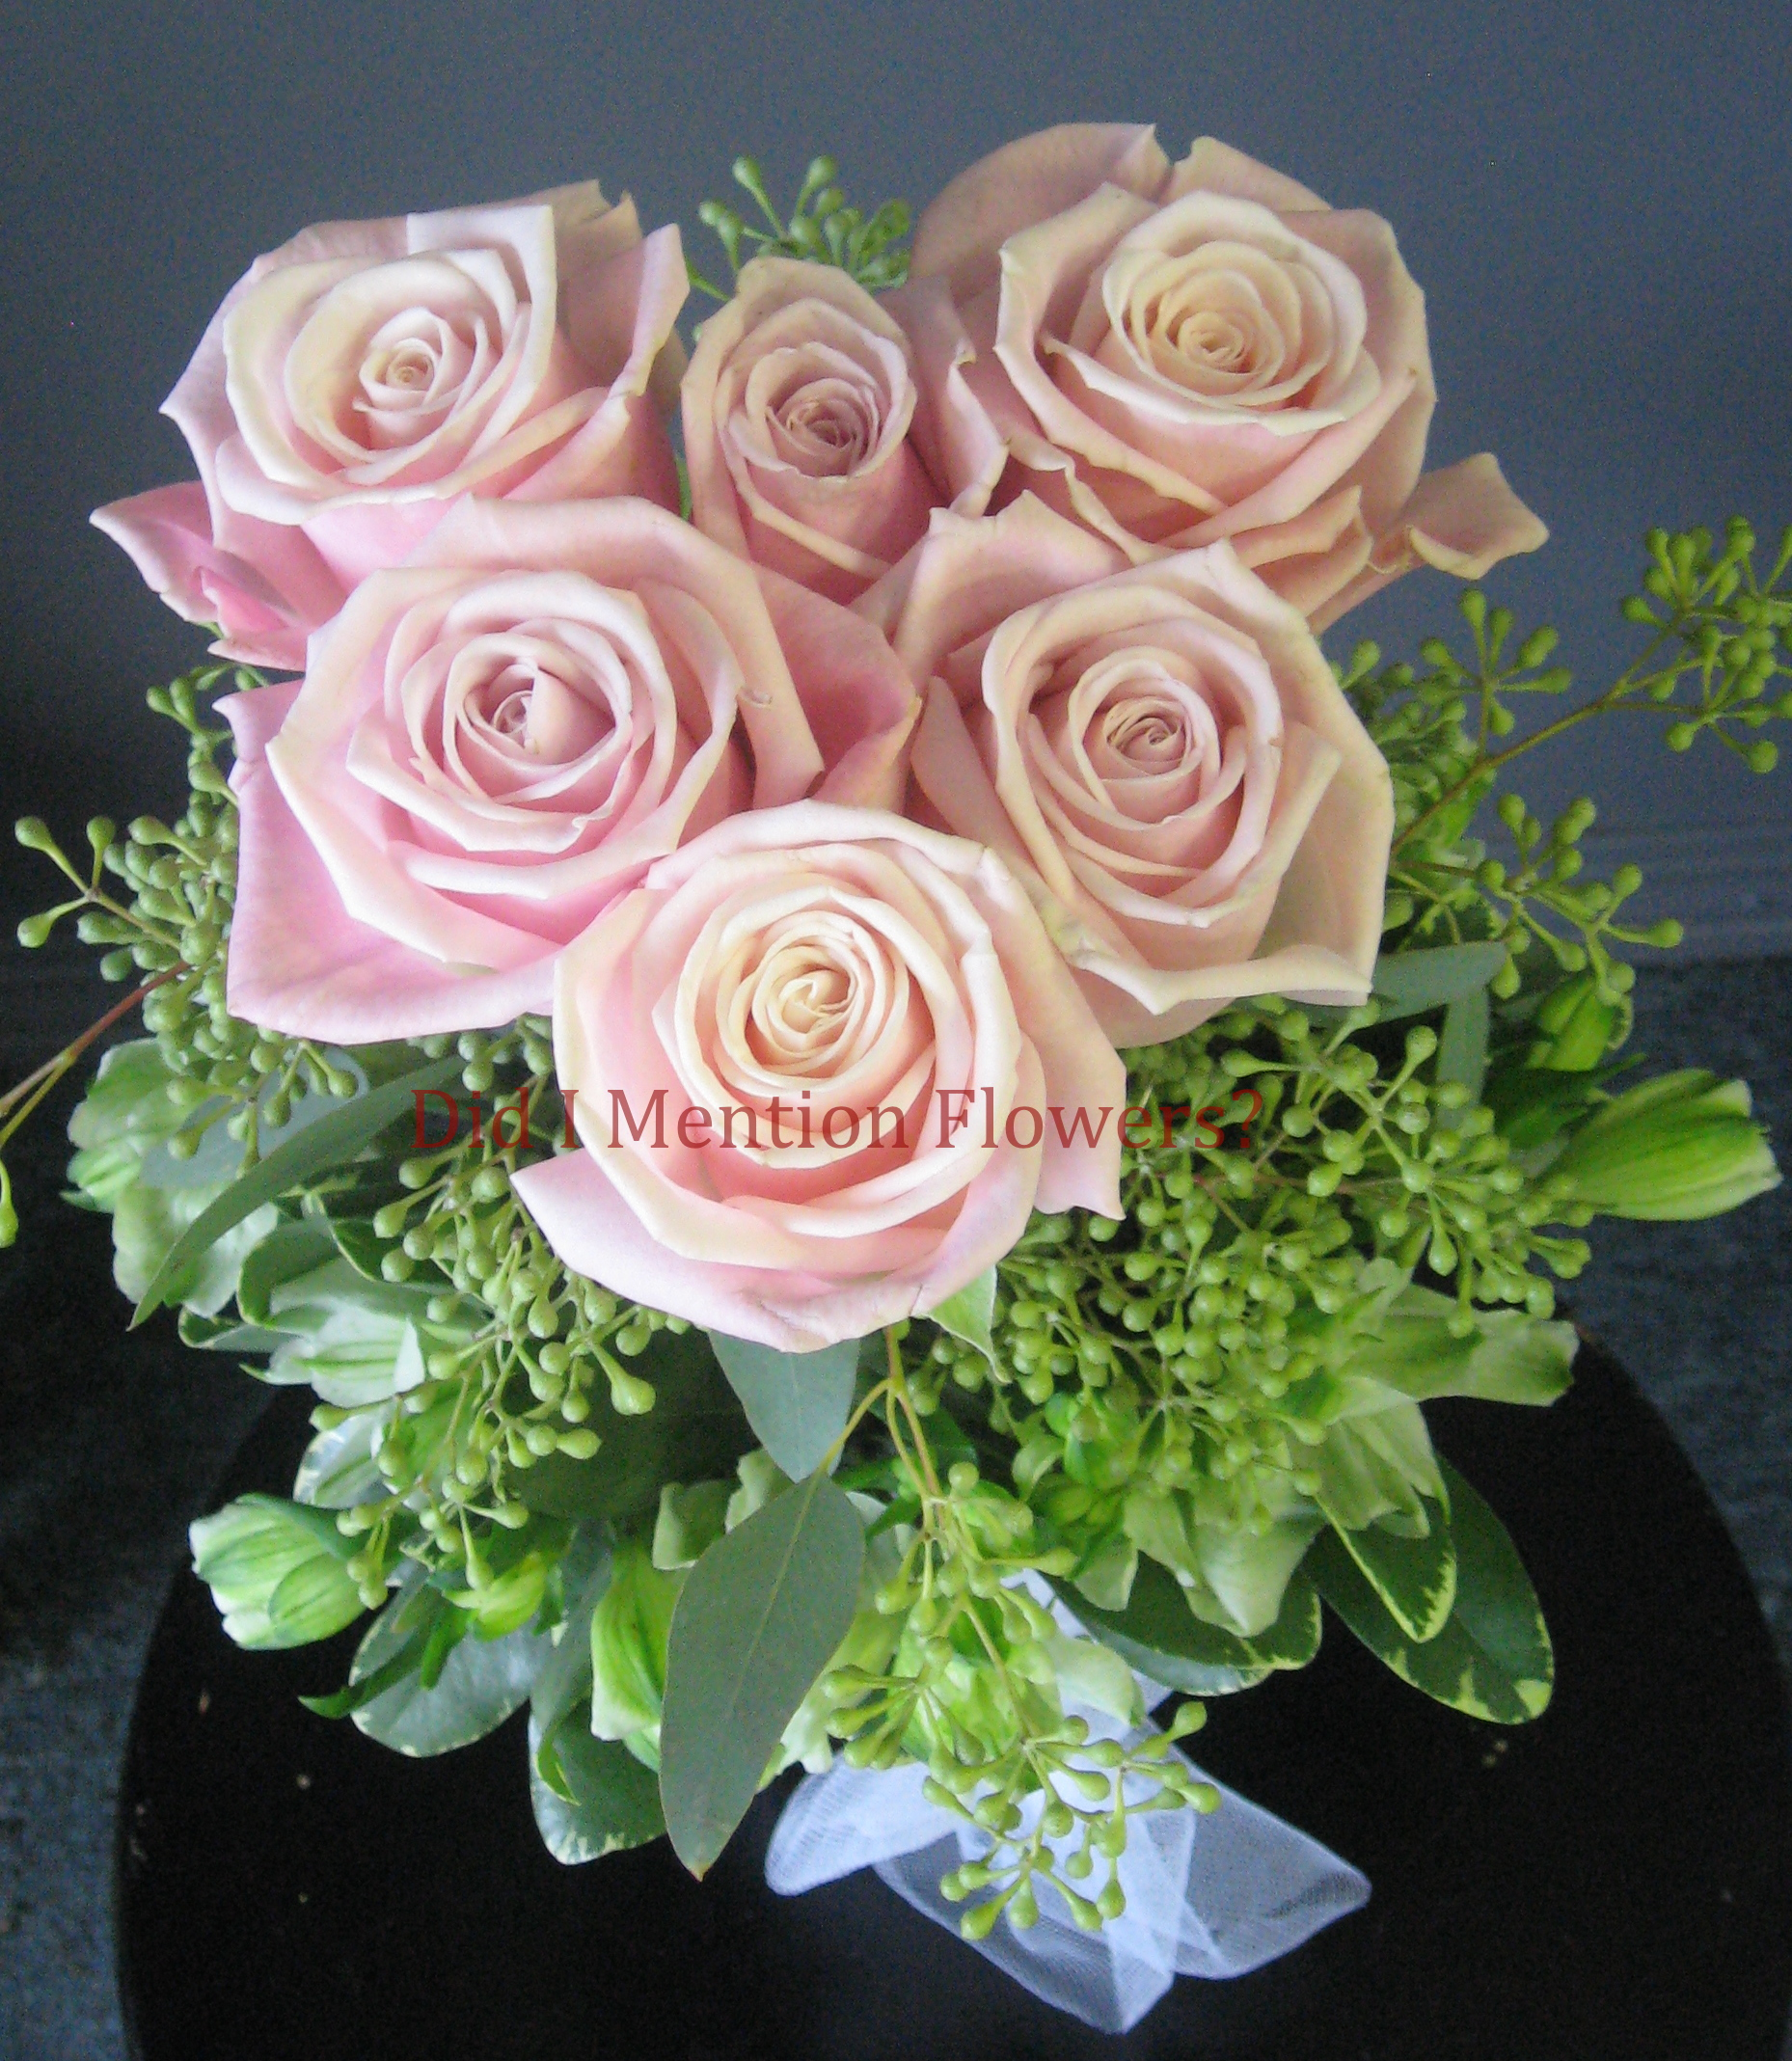 11 - Six Pack of Love Rose Vase Arrangement